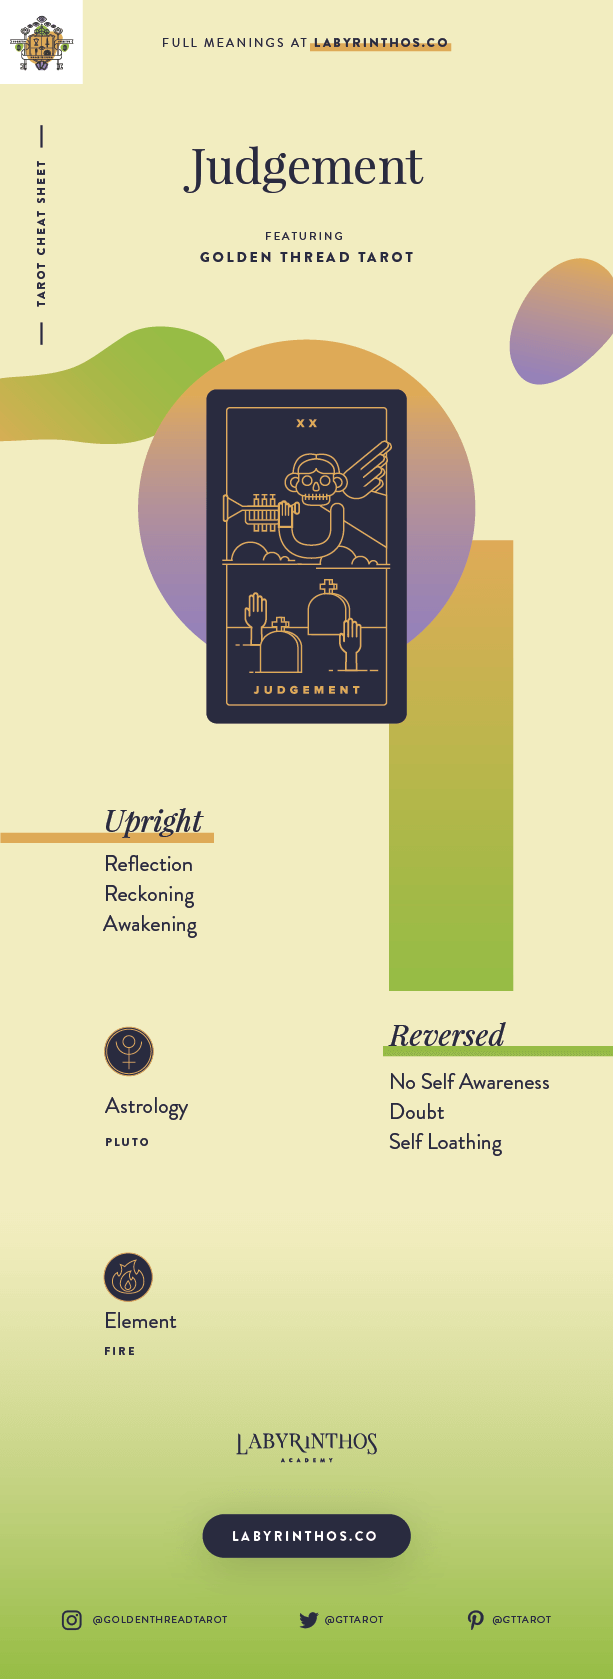 Judgement Meaning - Tarot Card Meanings Cheat Sheet